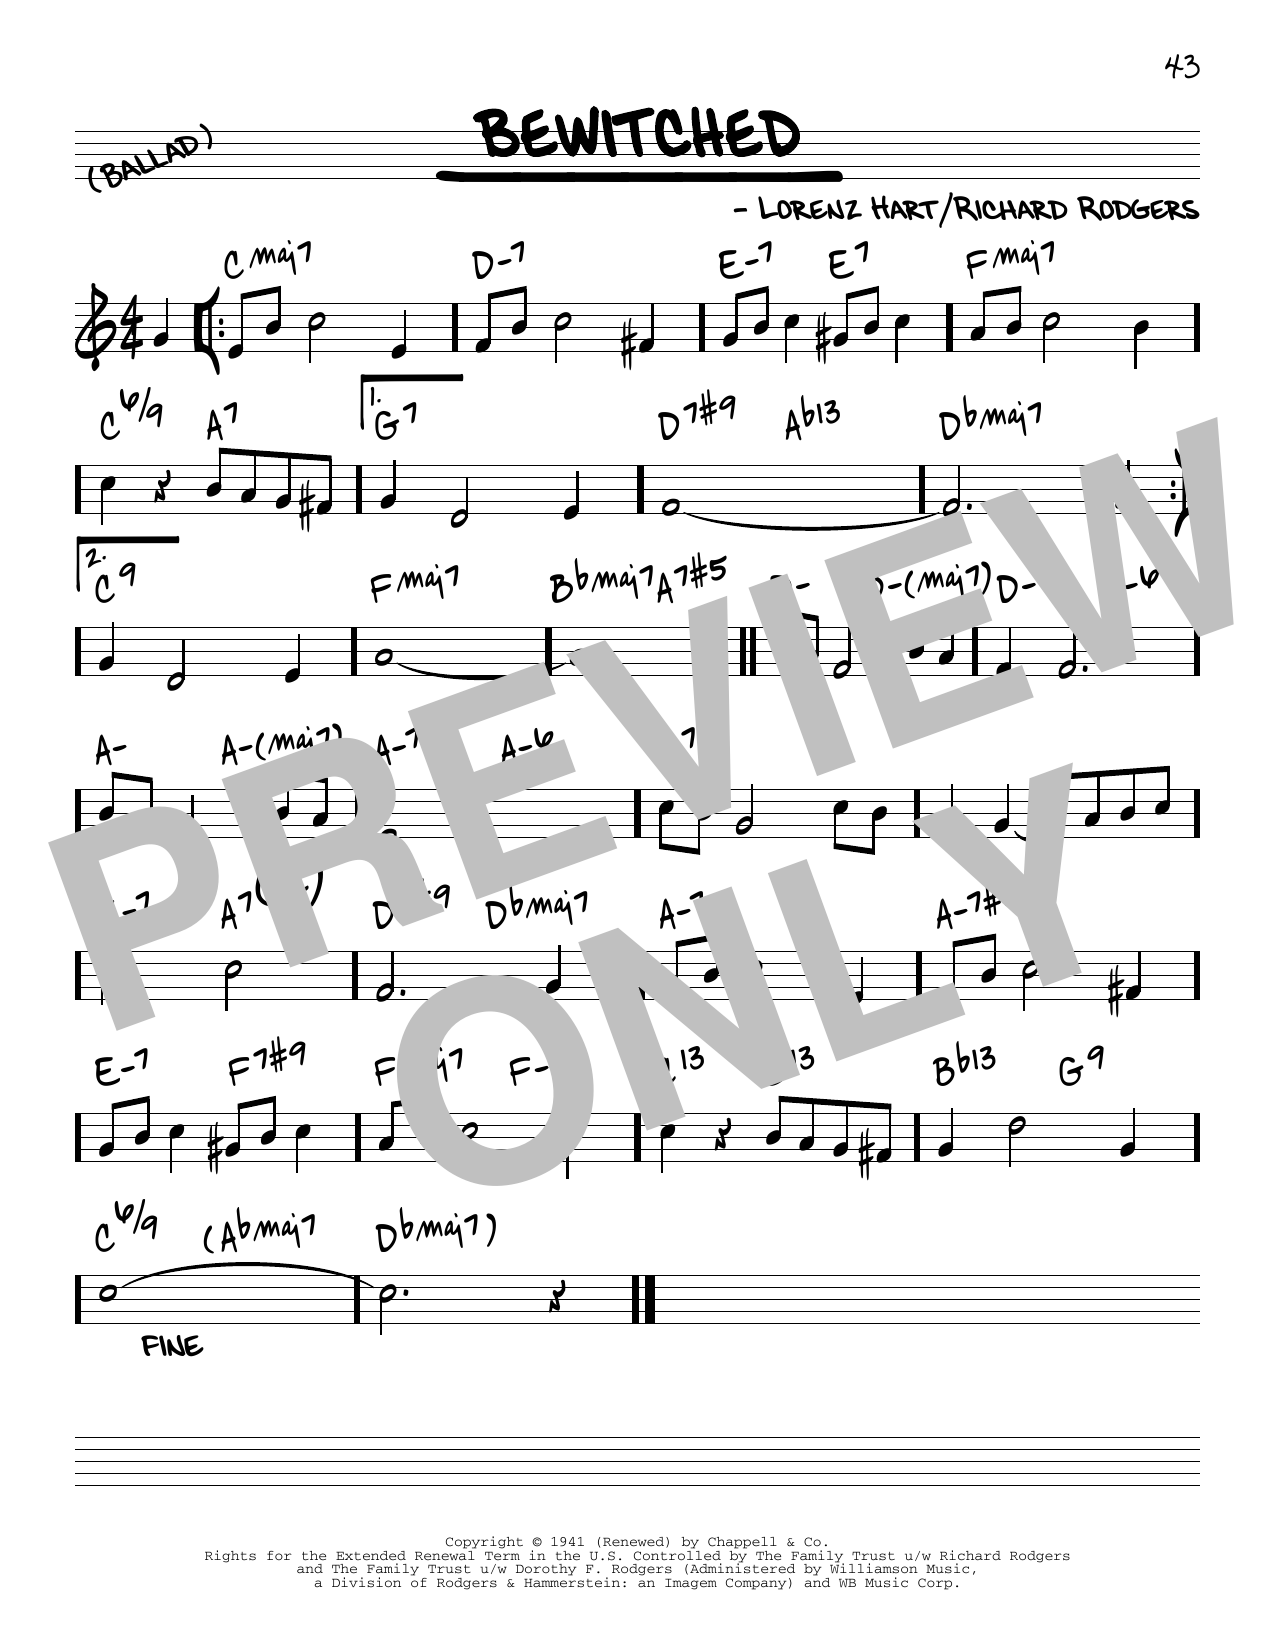 Rodgers & Hart Bewitched [Reharmonized version] (arr. Jack Grassel) sheet music notes printable PDF score